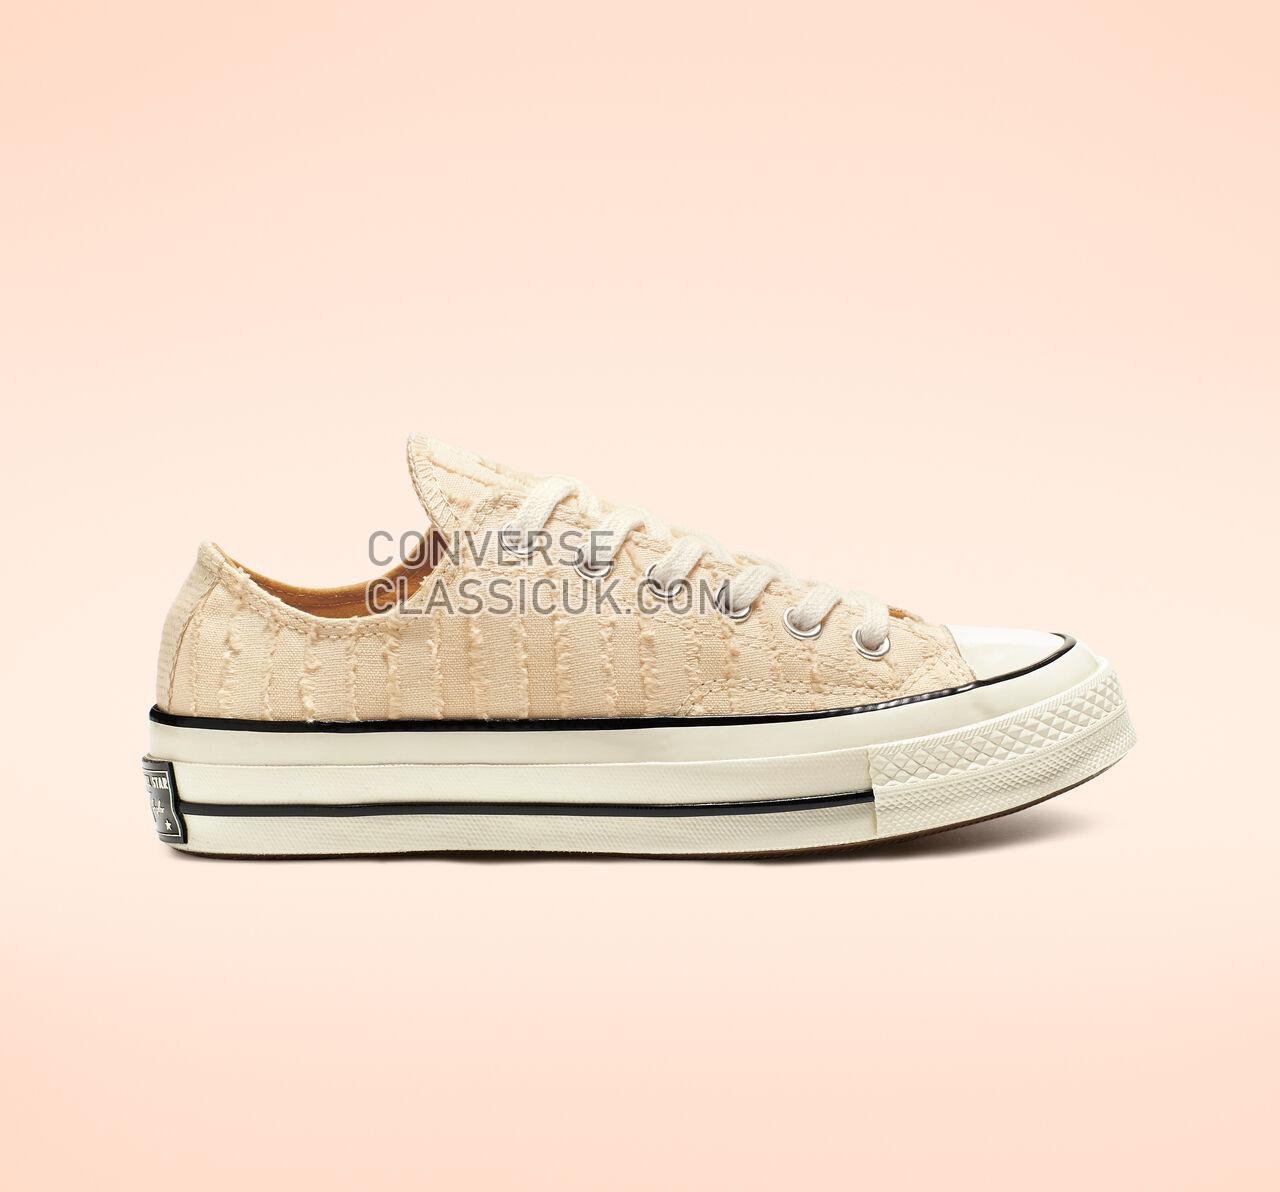 Converse Chuck 70 Fray Me Crazy Low Top Womens 564129C Natural Ivory/Club Gold/Egret Shoes